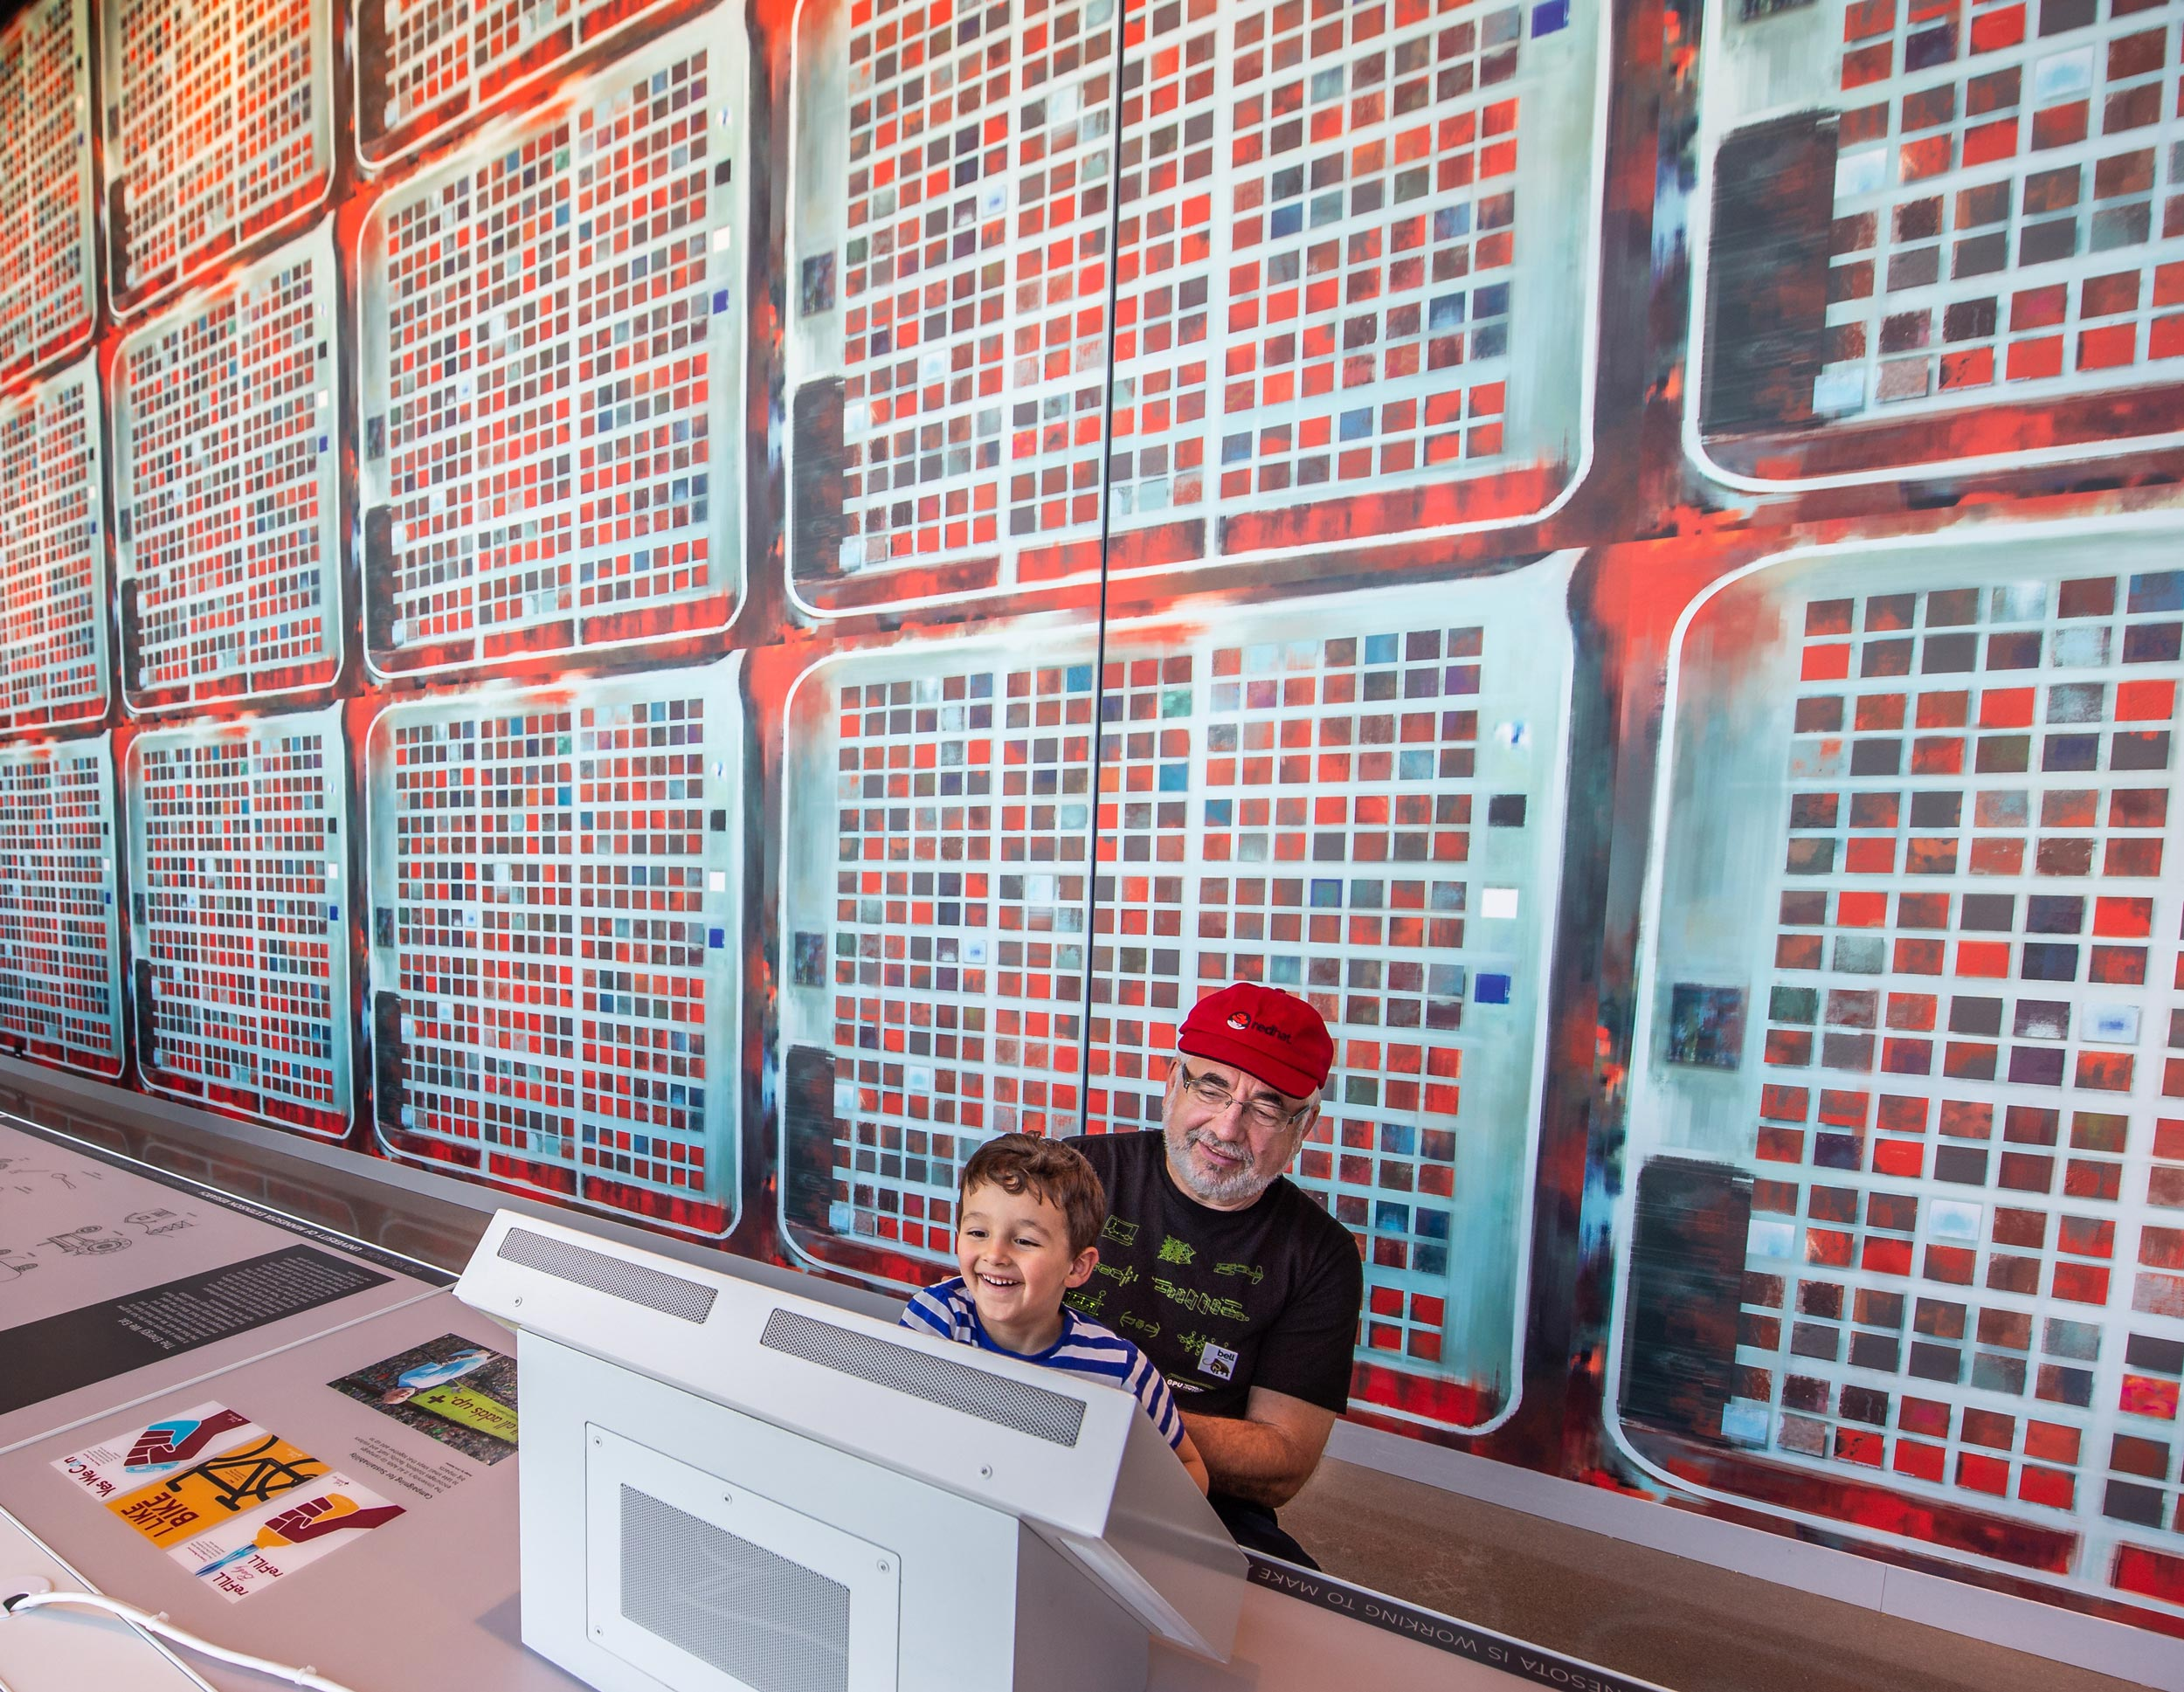 Images collected via remote-sensing by CALMIT have been used as wallpaper in the Bell Museum, St. Paul, Minn. | Courtesy Joe Szurszewski, for the Bell Museum